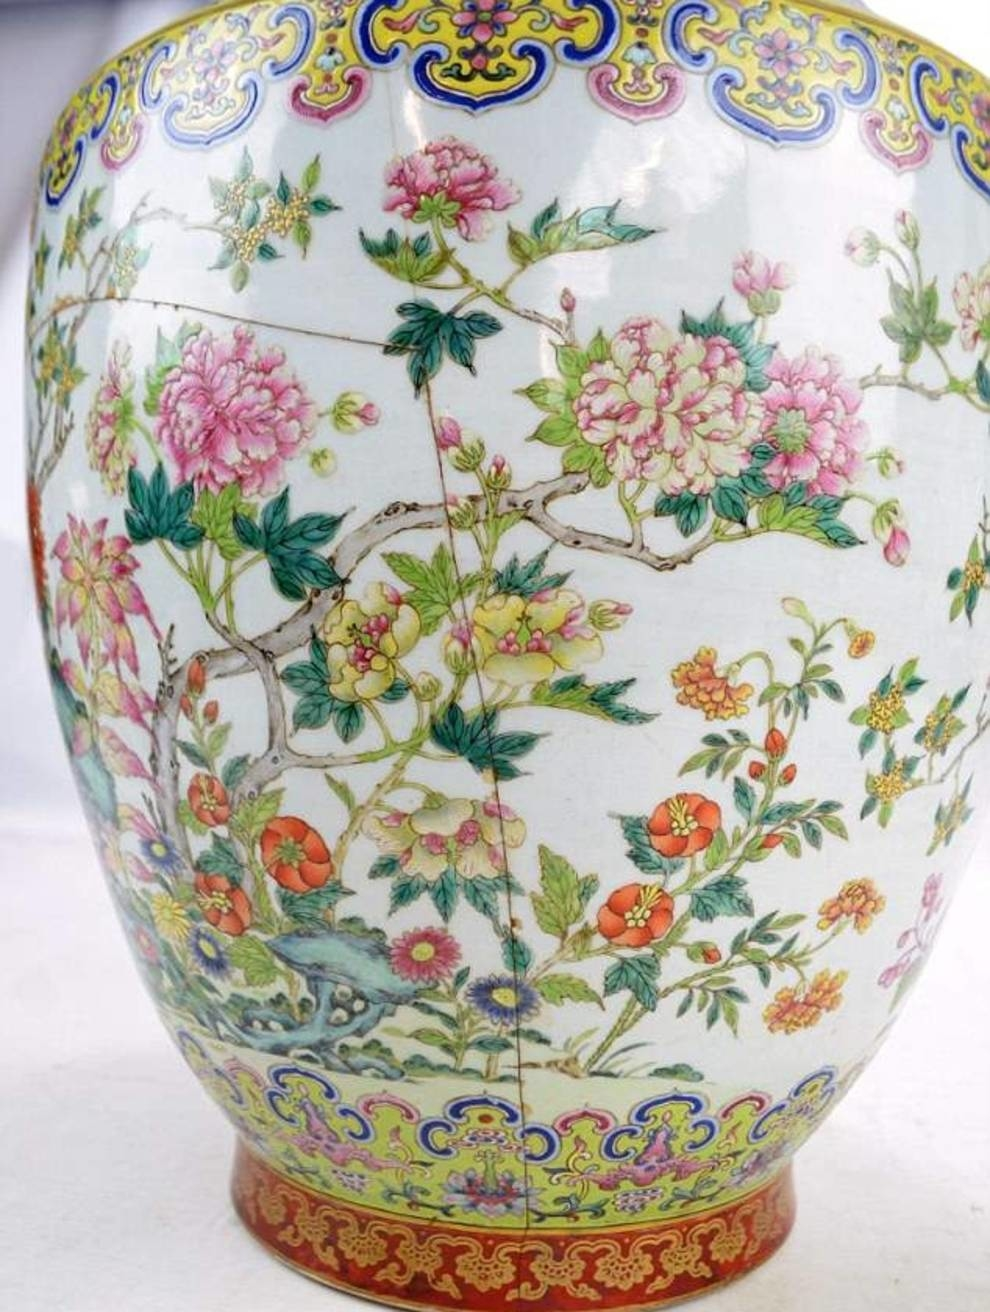 Once this vase was bought for 200 pounds and did not attach any importance to the imperial stamp on its bottom